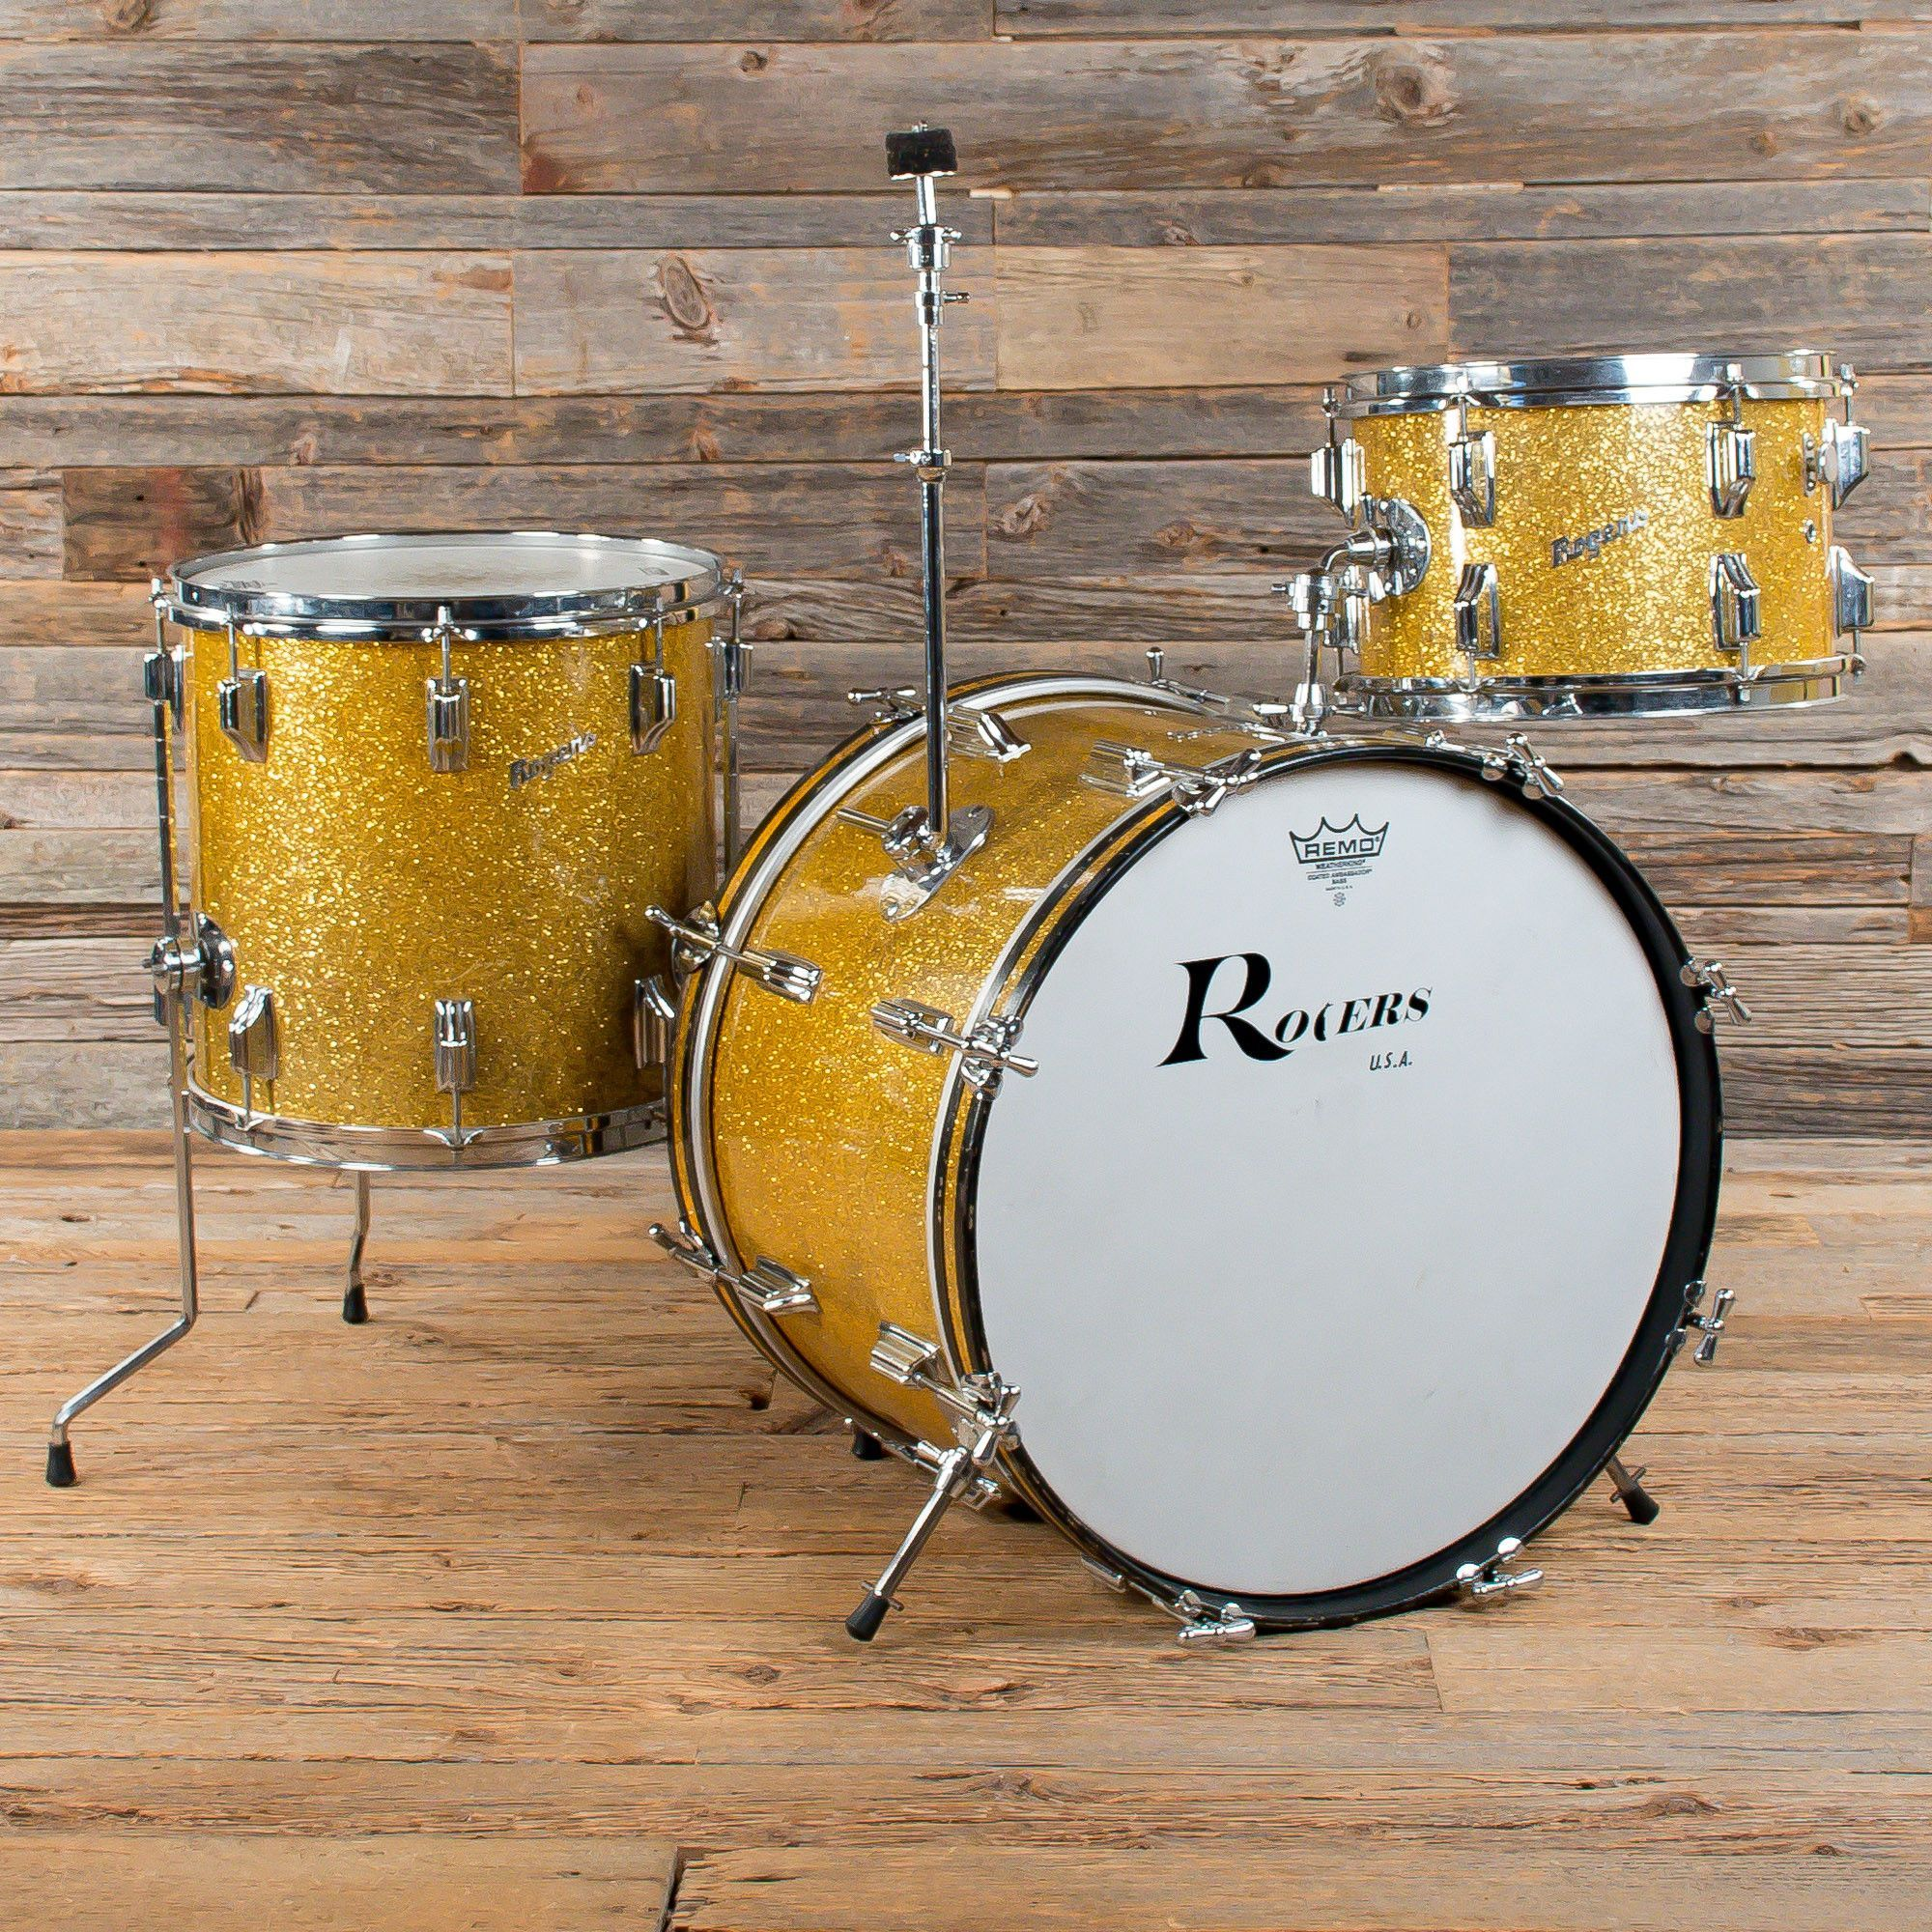 Rogers Holiday 12 14 20 3pc Drum Kit Gold Sparkle Cleveland Era Early Drum Kits Vintage Drums Drums